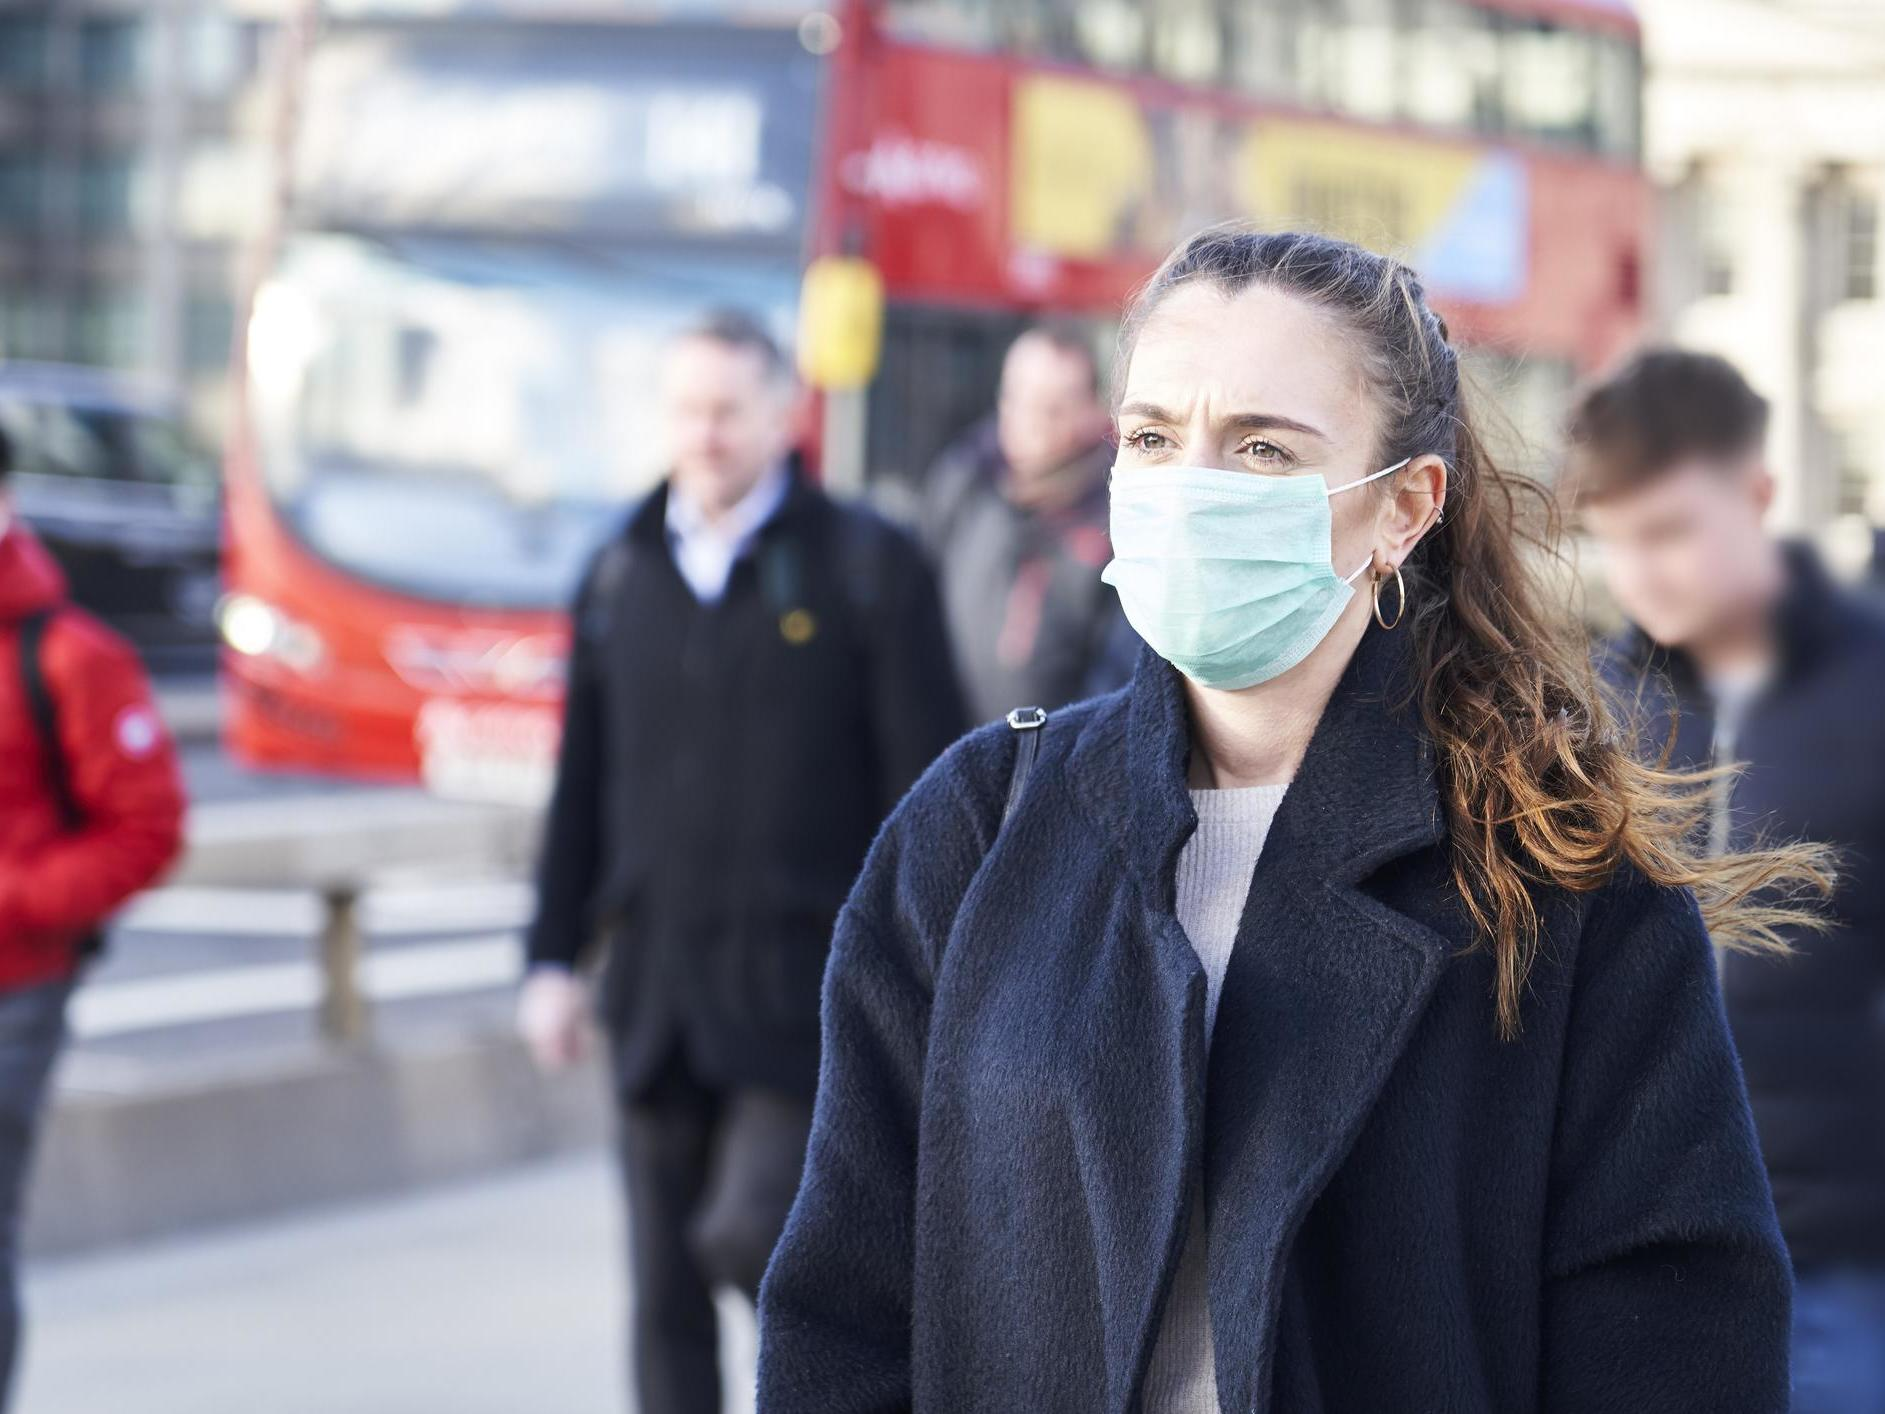 Coronavirus: Face masks not enough to protect healthy people from contracting infection, says WHO